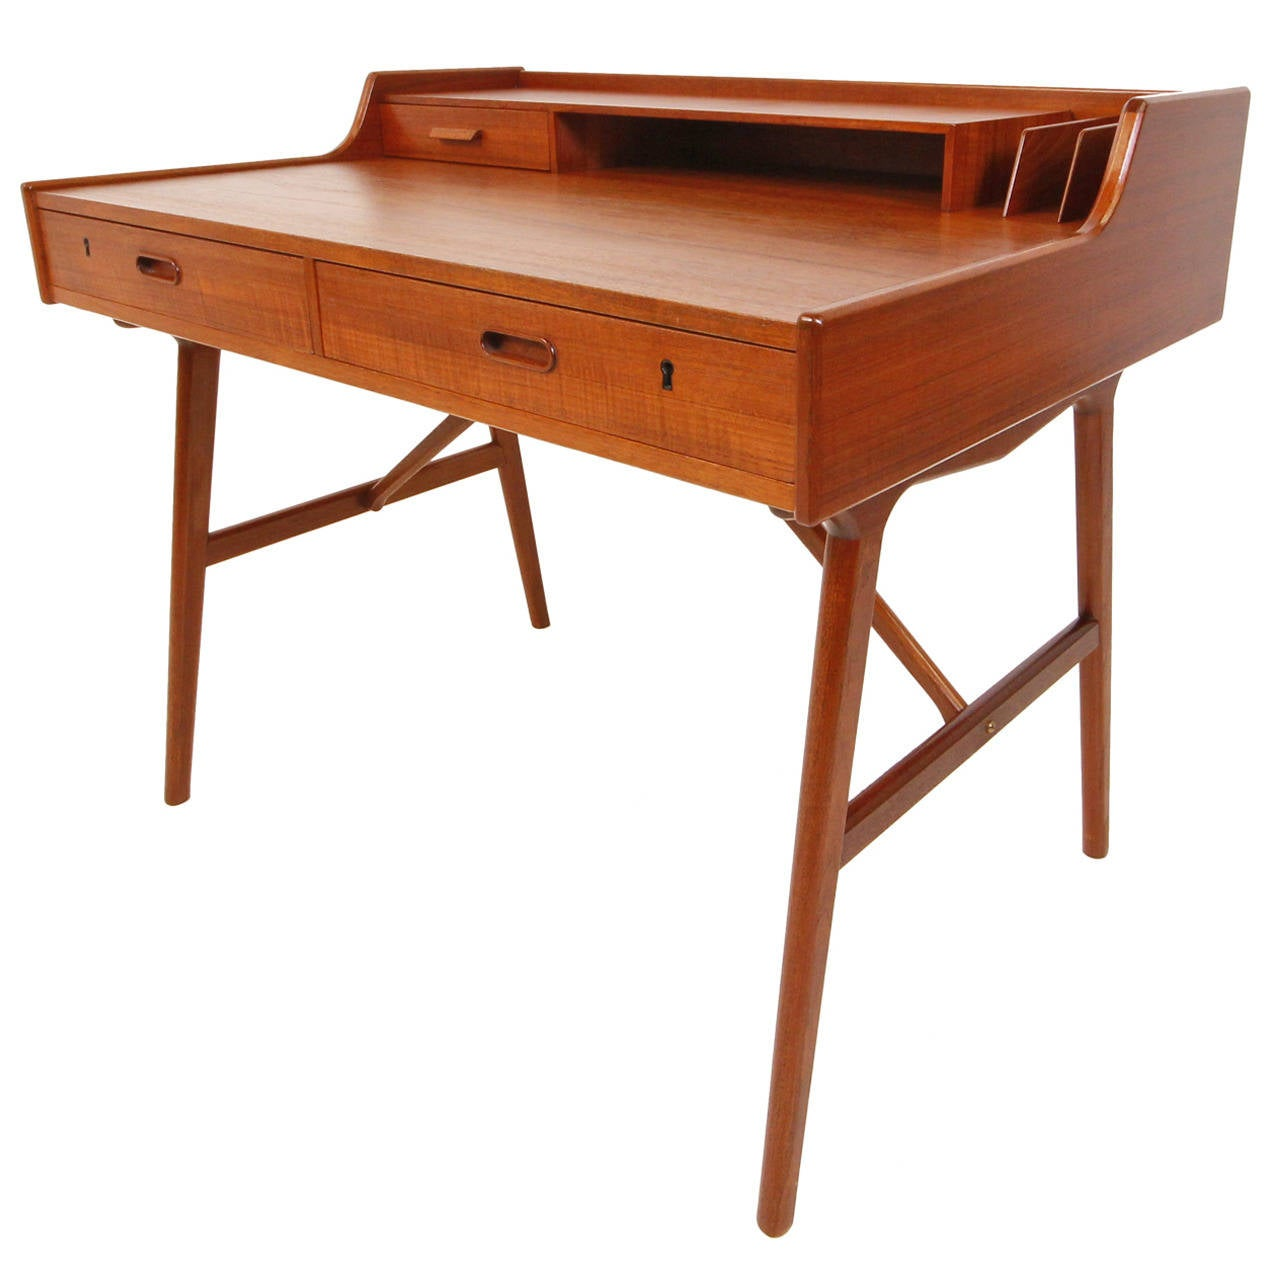 Danish Modern Teak Desk By Arne Wahl Iversen At 1stdibs